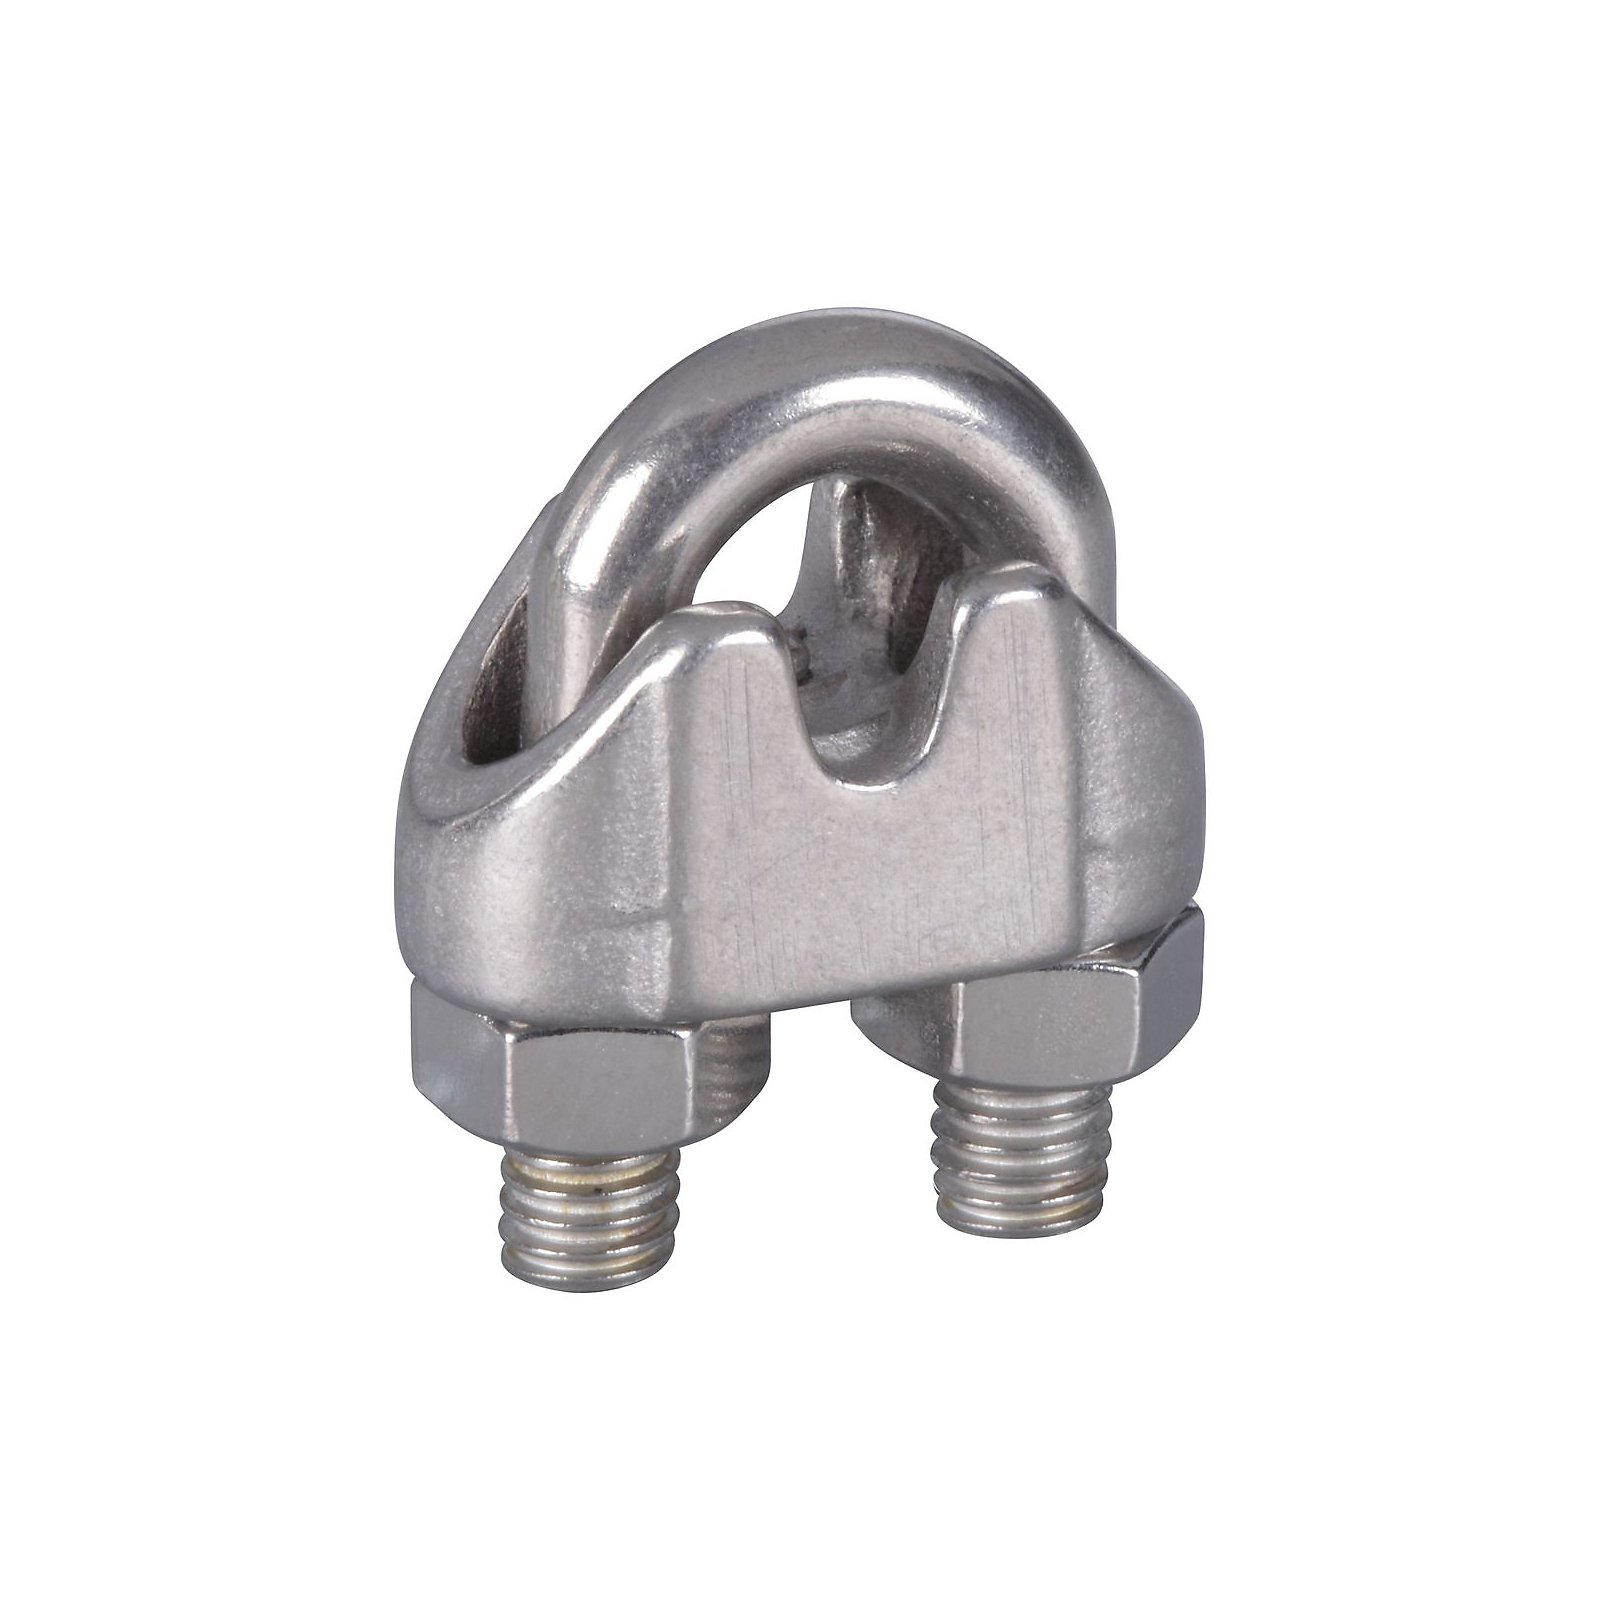 National Hardware N348-896 25 Pack V4230 3/16in. Wire Cable Clamps, Stainless Steel